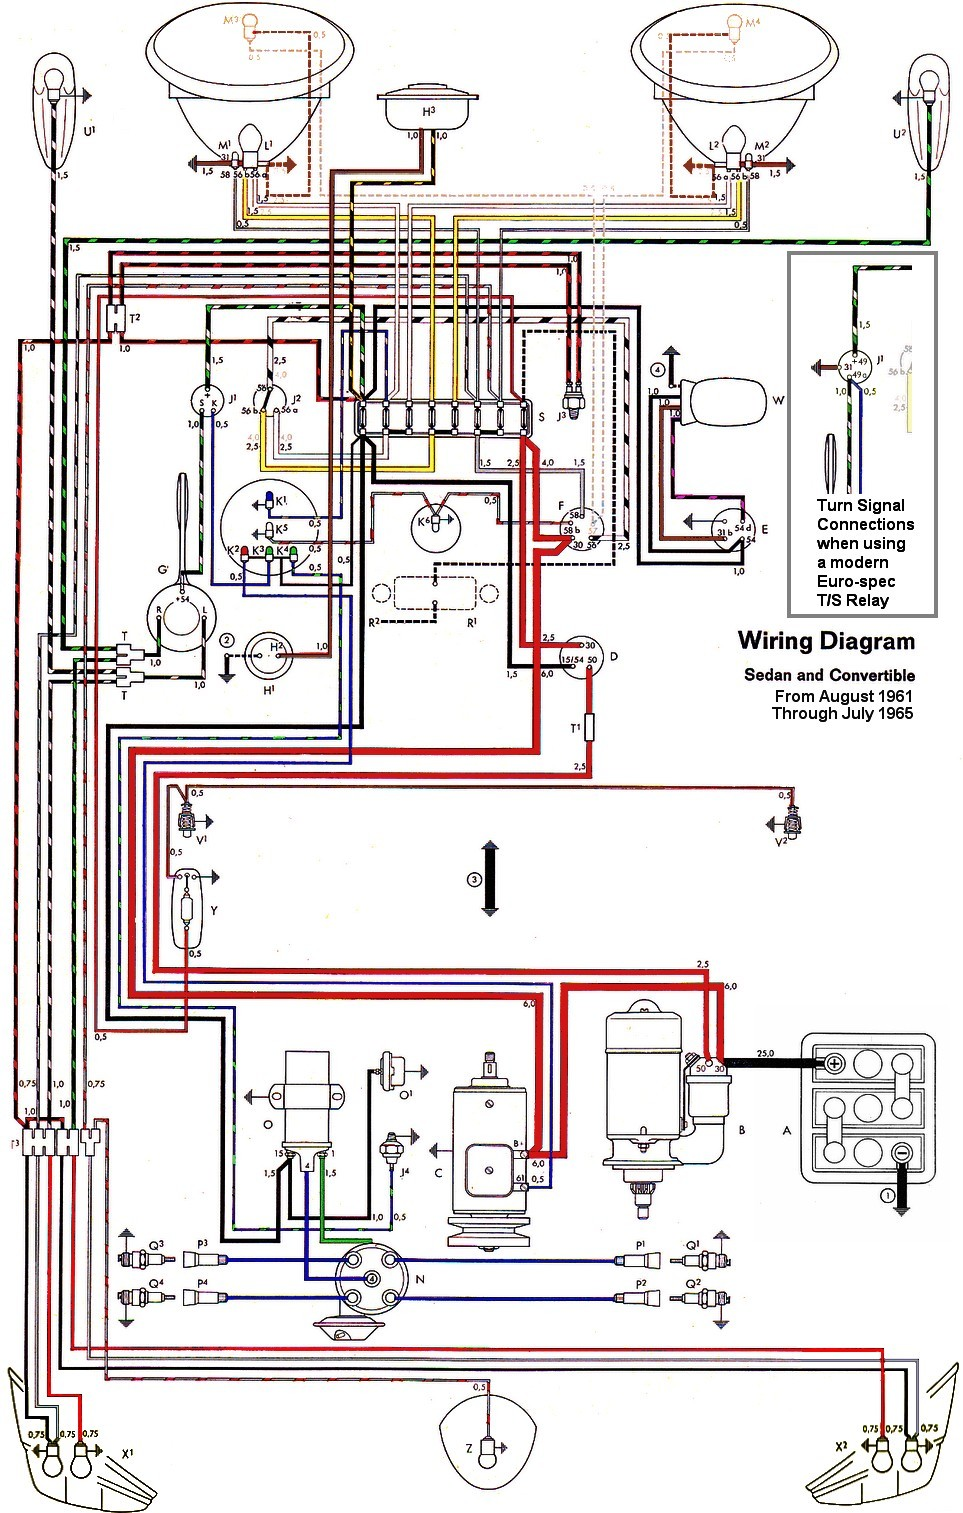 hight resolution of thermostat 7 diagram wire wiring th520d